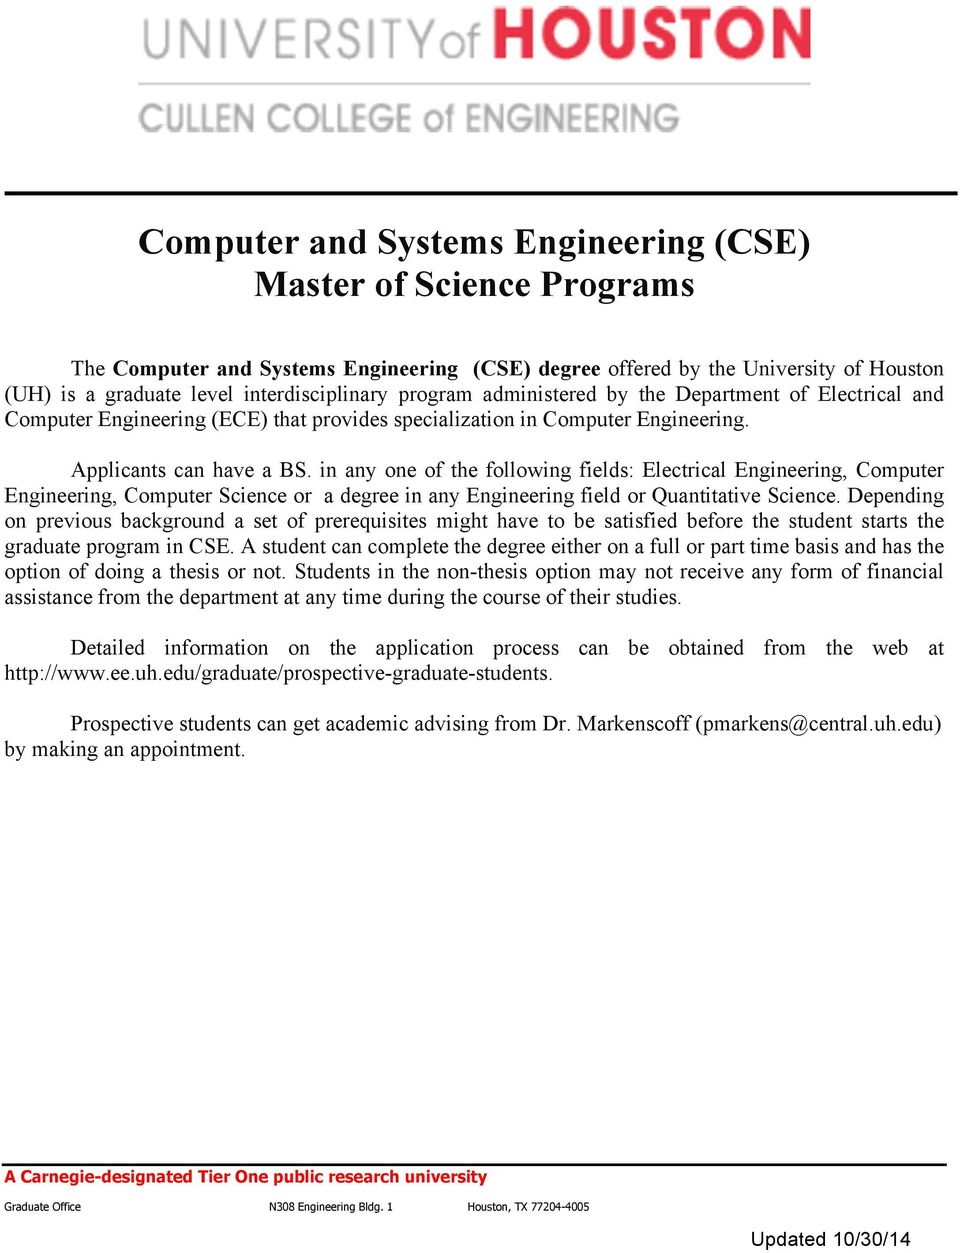 in any one of the following fields: Electrical Engineering, Computer Engineering, Computer Science or a degree in any Engineering field or Quantitative Science.